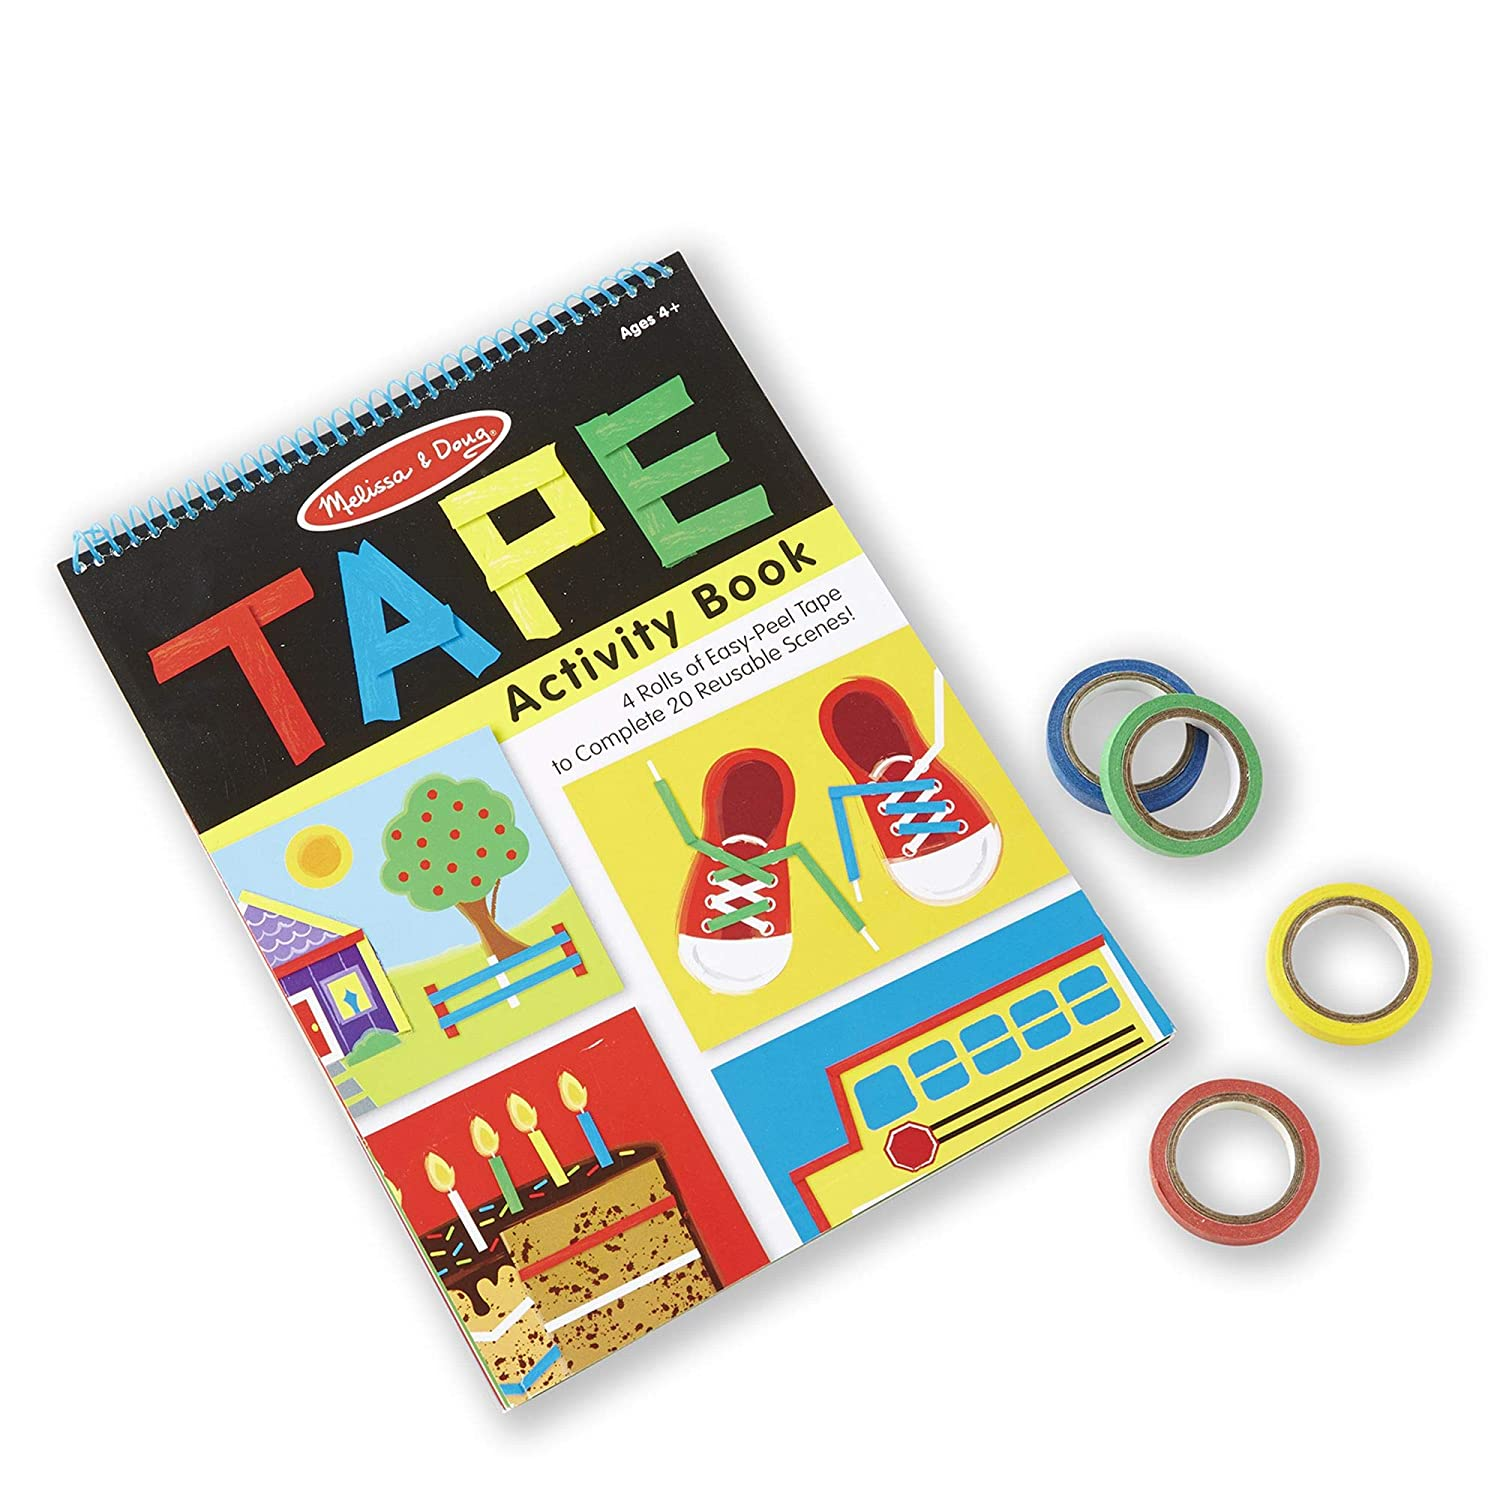 Melissa & Doug Tape Activity Book (Early Learning Skill Builder, 4 Rolls of Easy-Tear Tape, Sturdy Plastic Binding, 20 Pages, Great Gift for Girls and Boys - Best for 4, 5, 6, and 7 Year Olds)